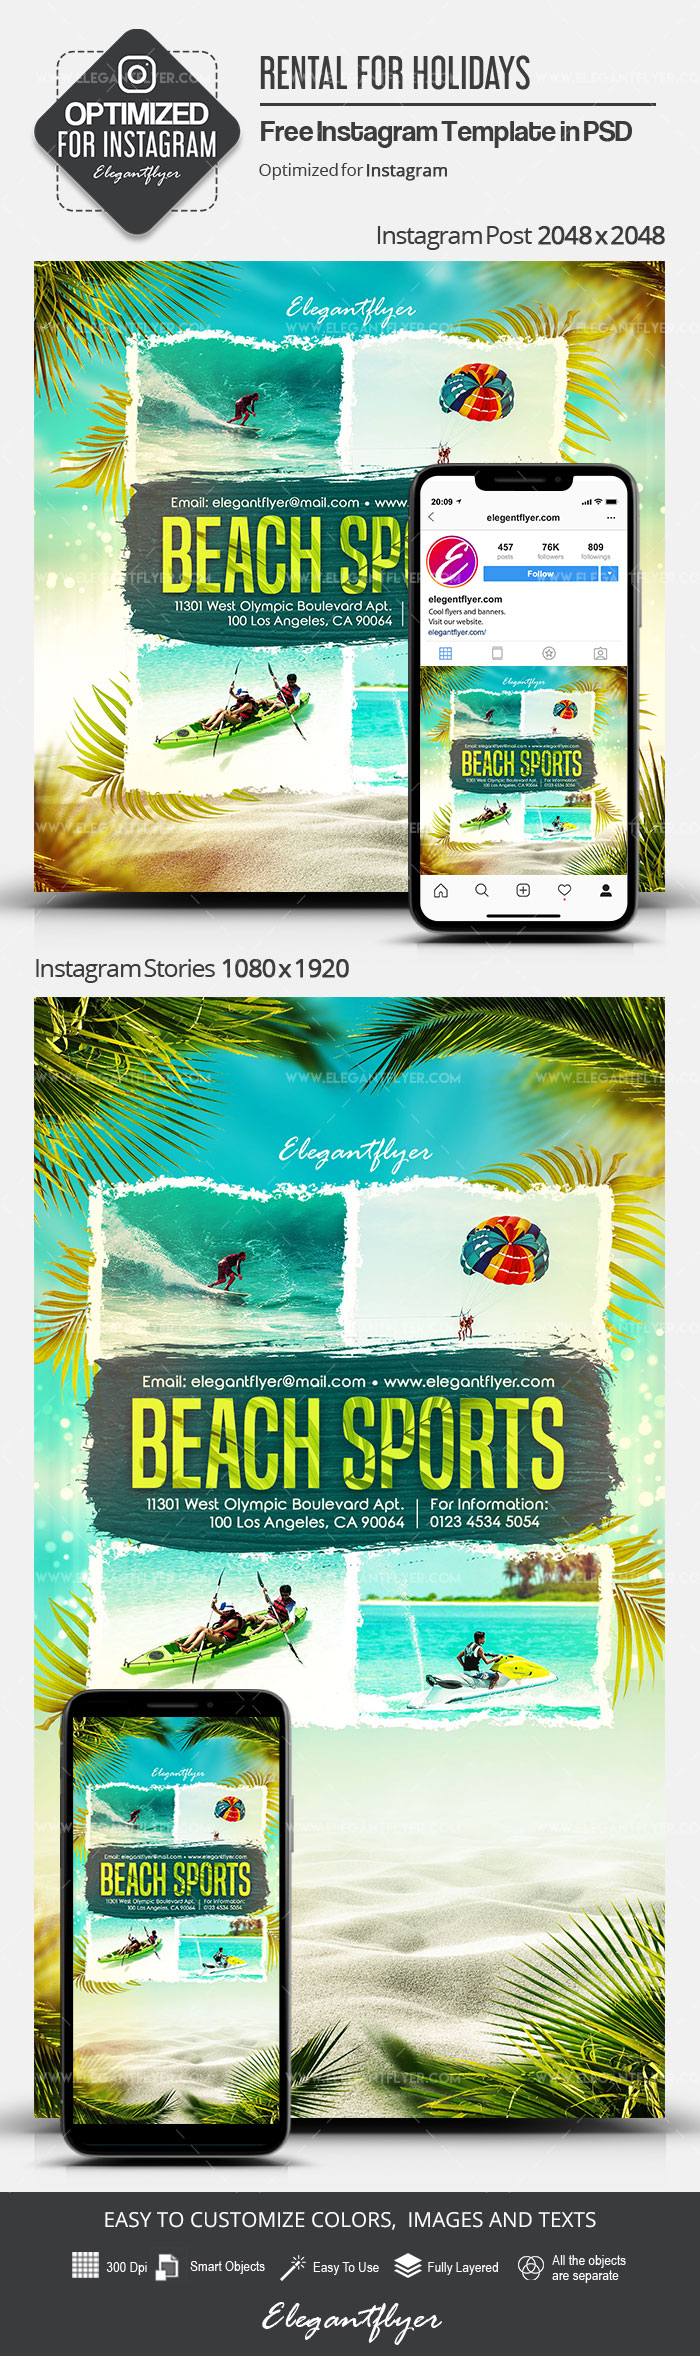 Beach Sports – Free Instagram Stories Template in PSD + Post Templates